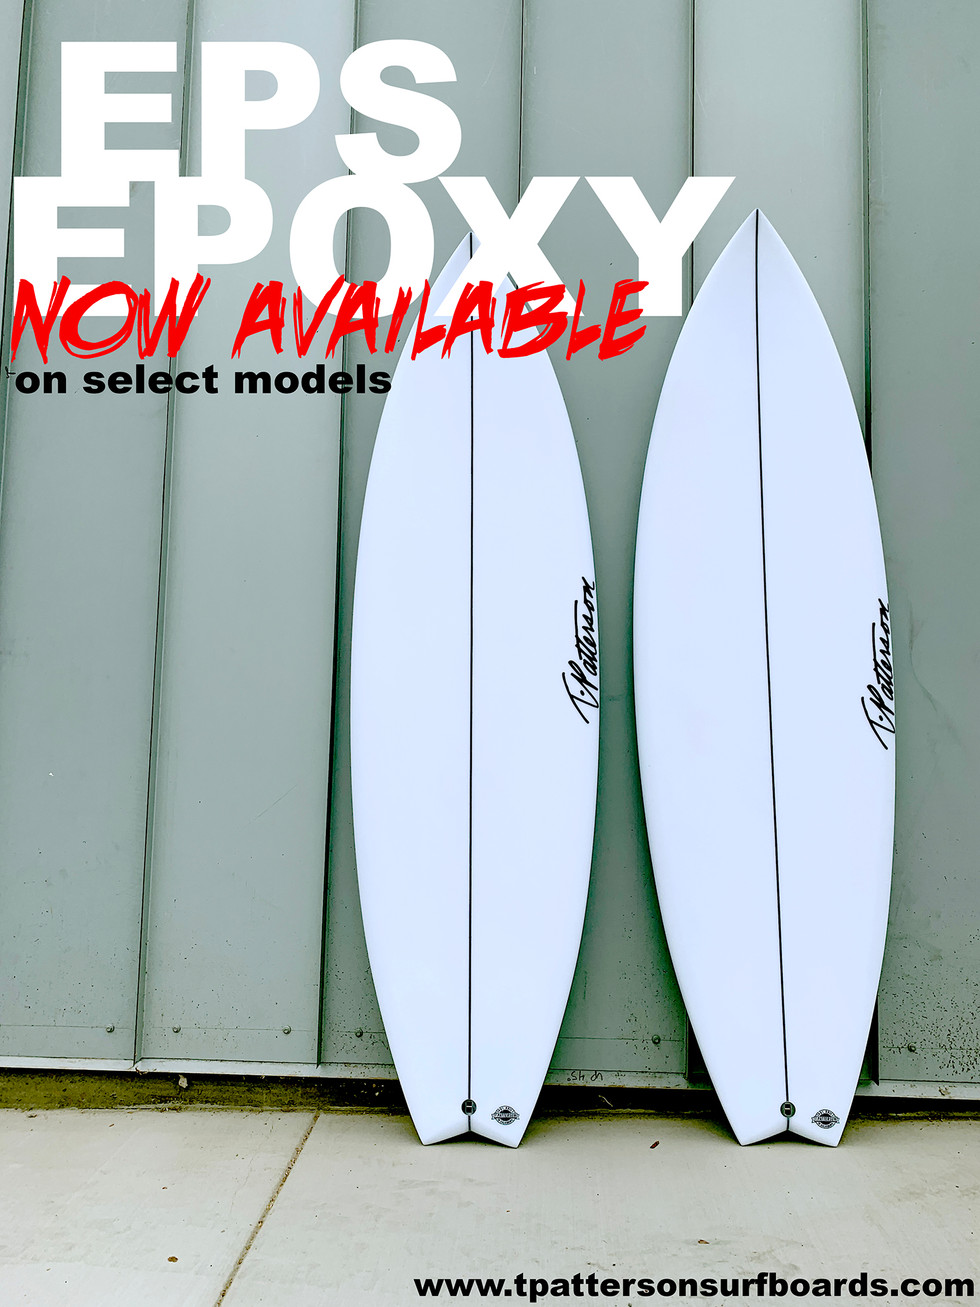 EPS EPOXY now available!